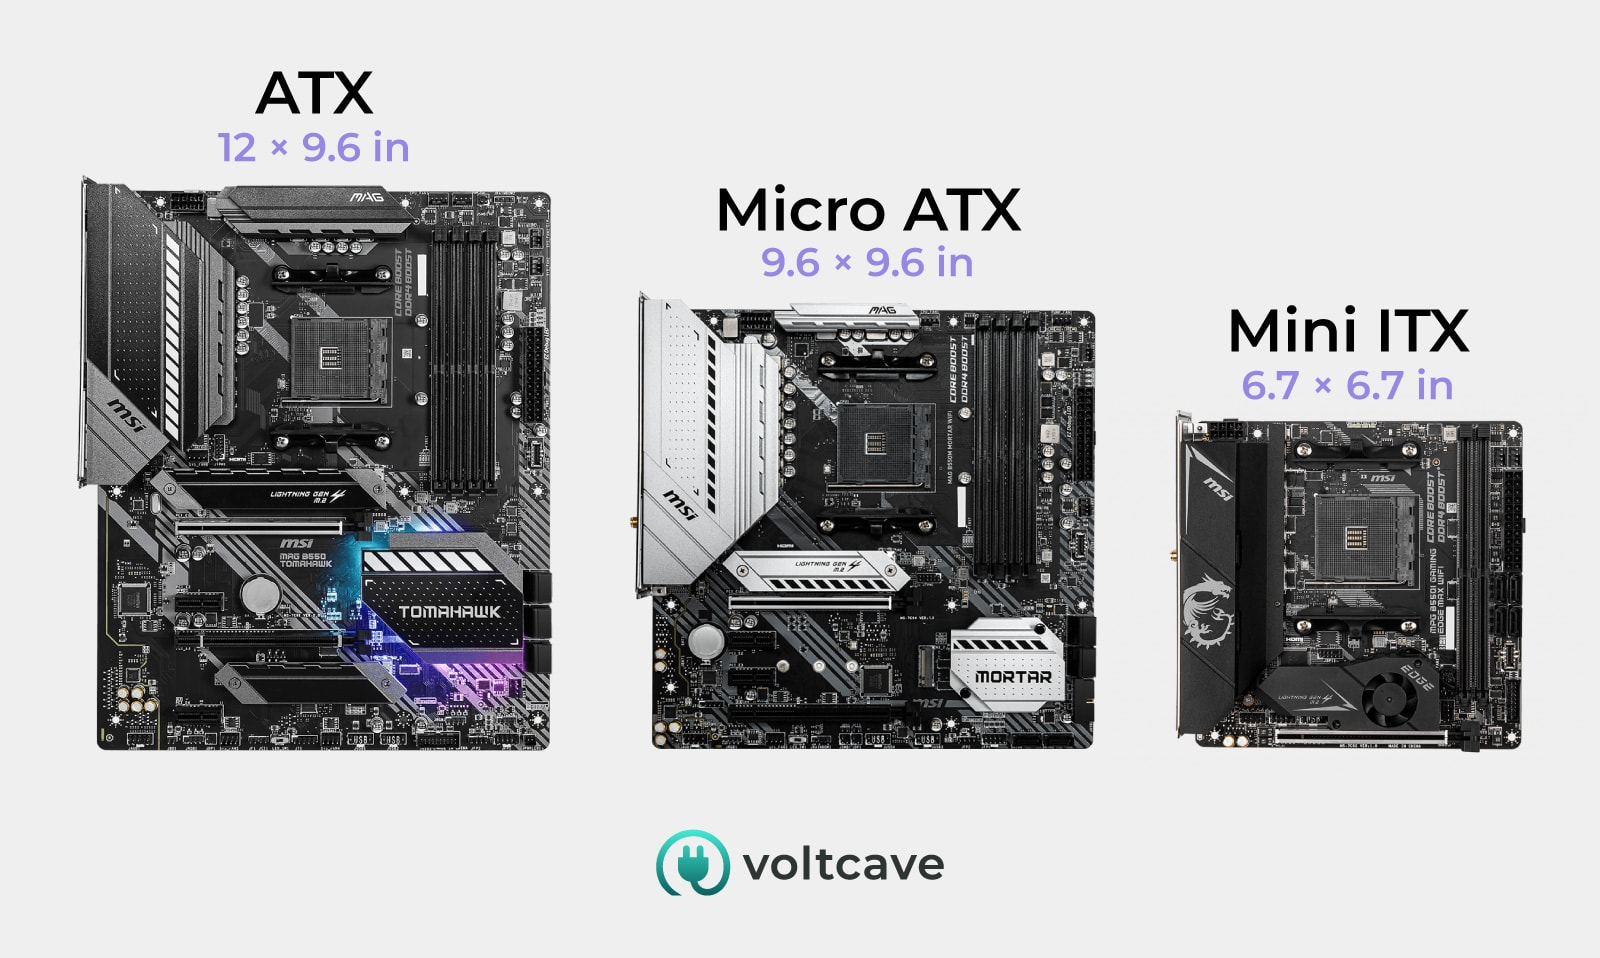 motherboard sizes side-by-side